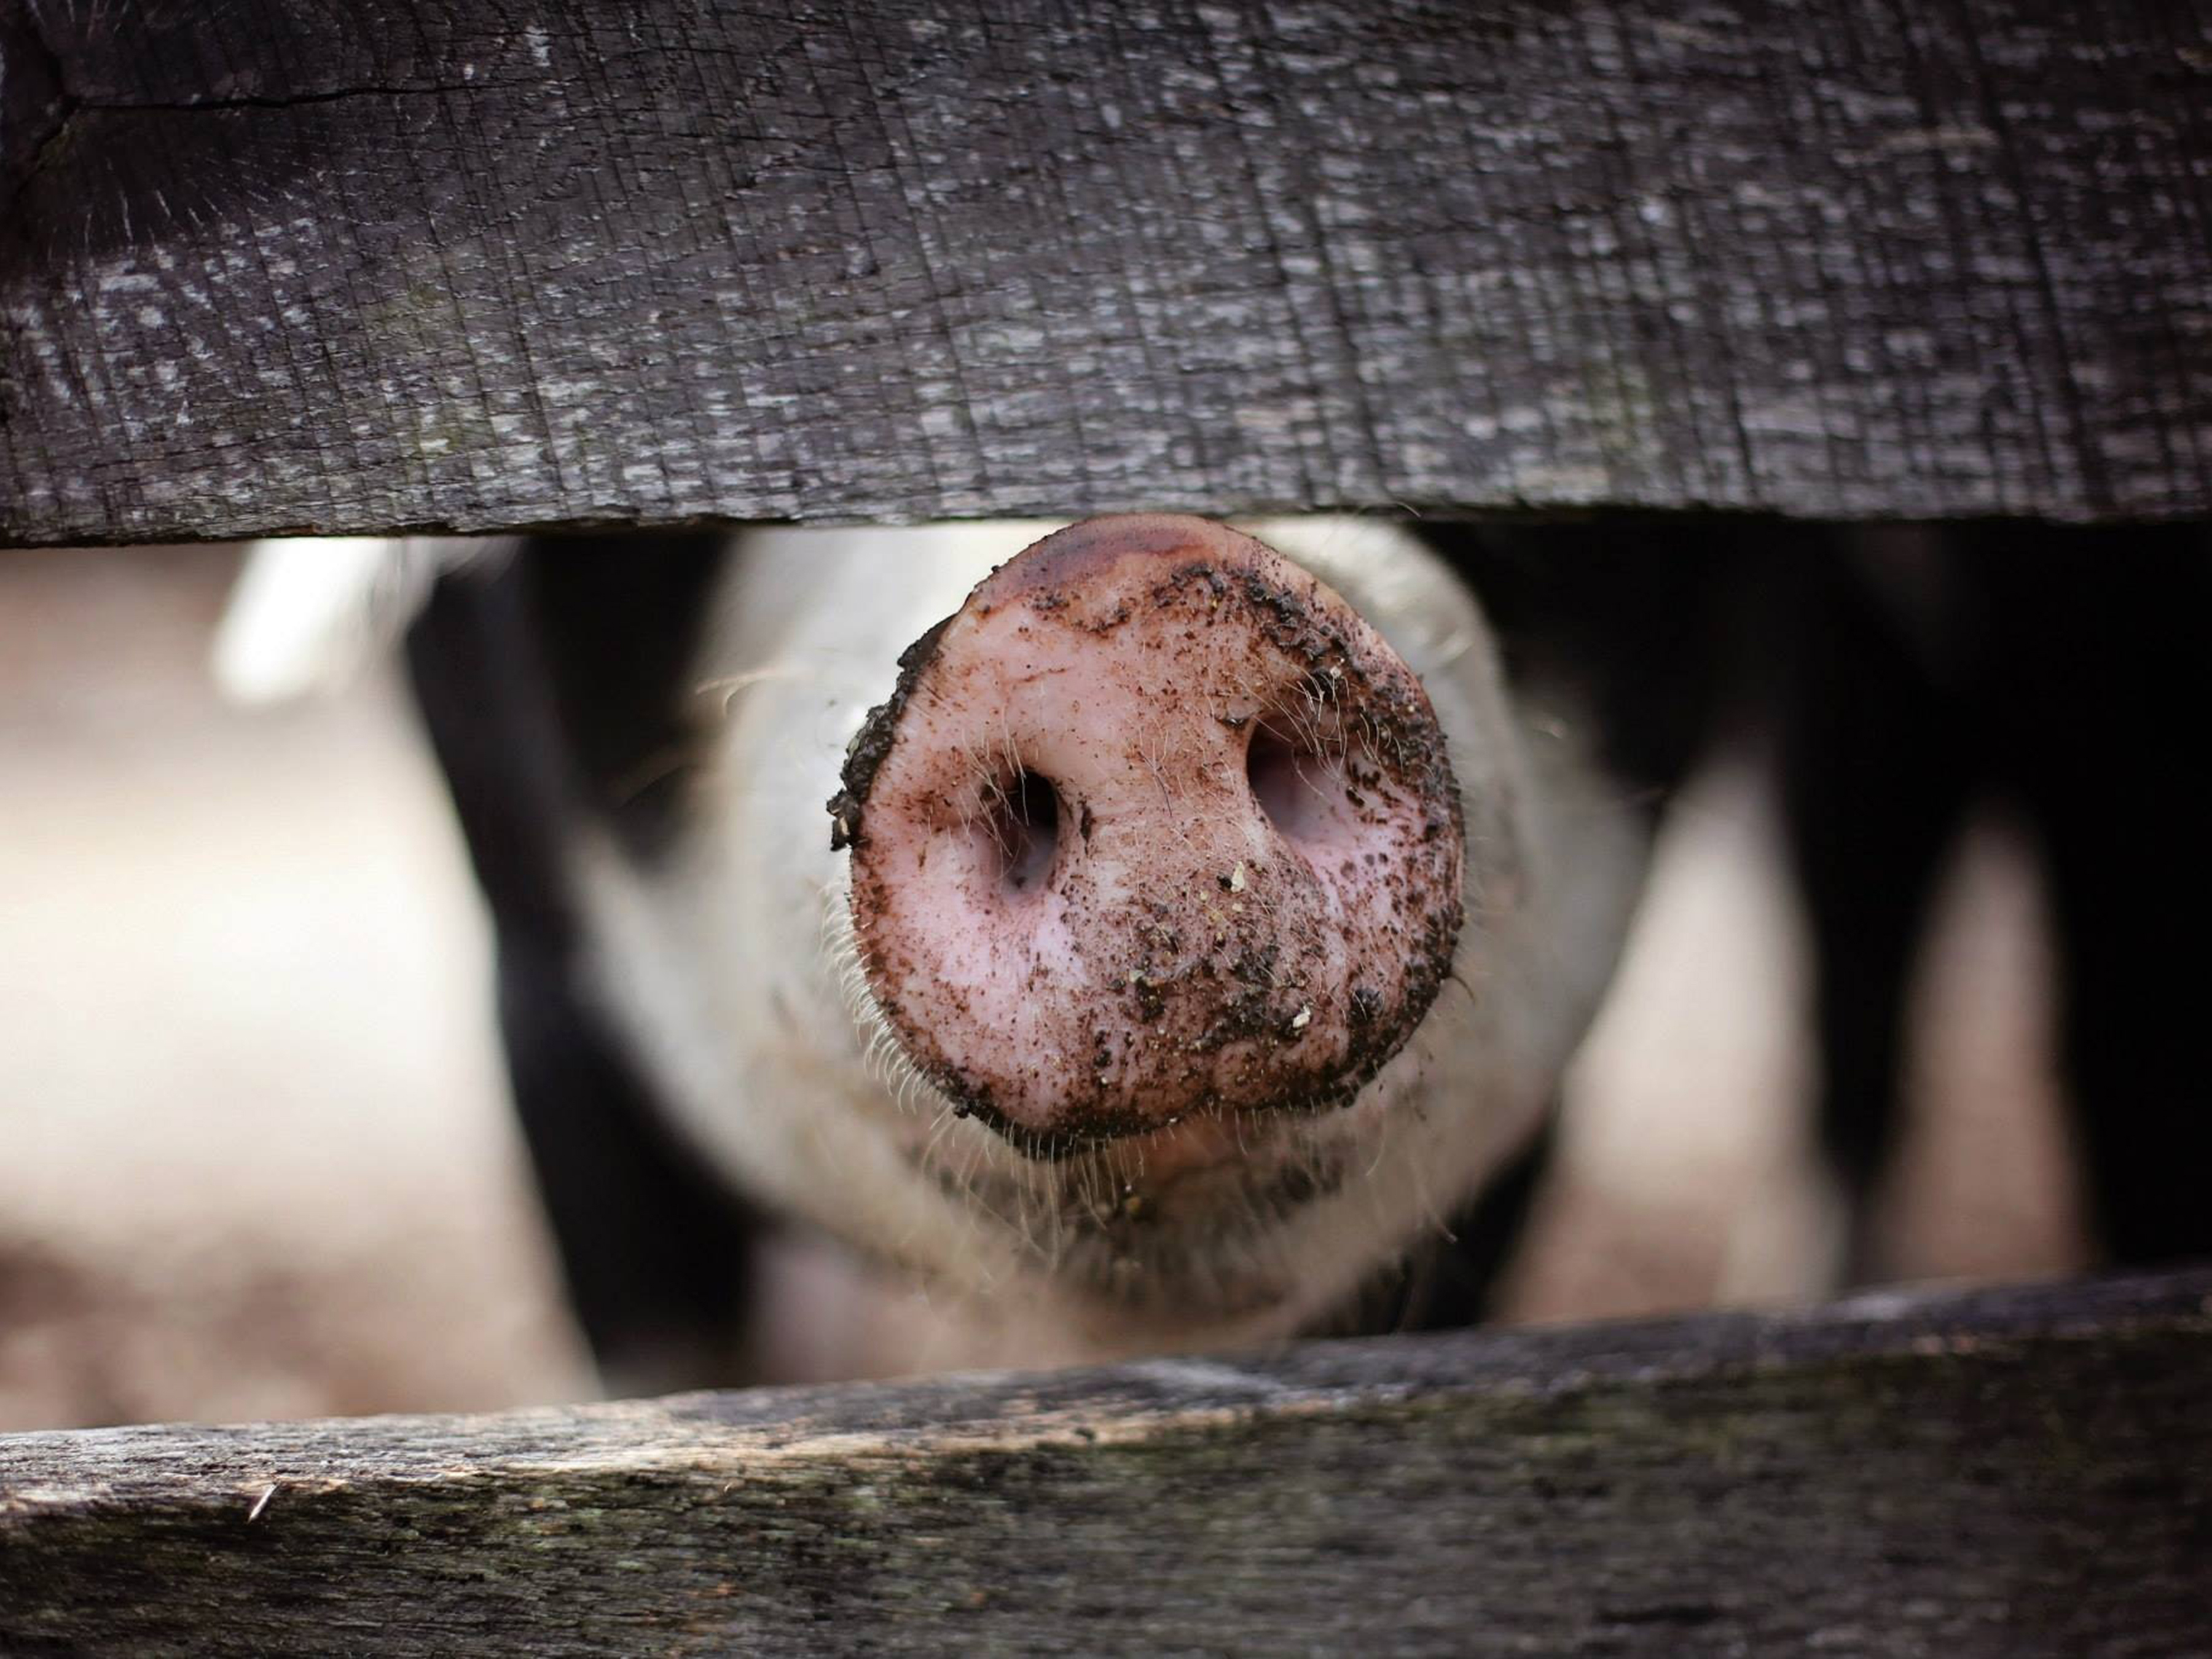 Thousands of Pigs Rot in Compost as U.S. Faces Meat Shortage